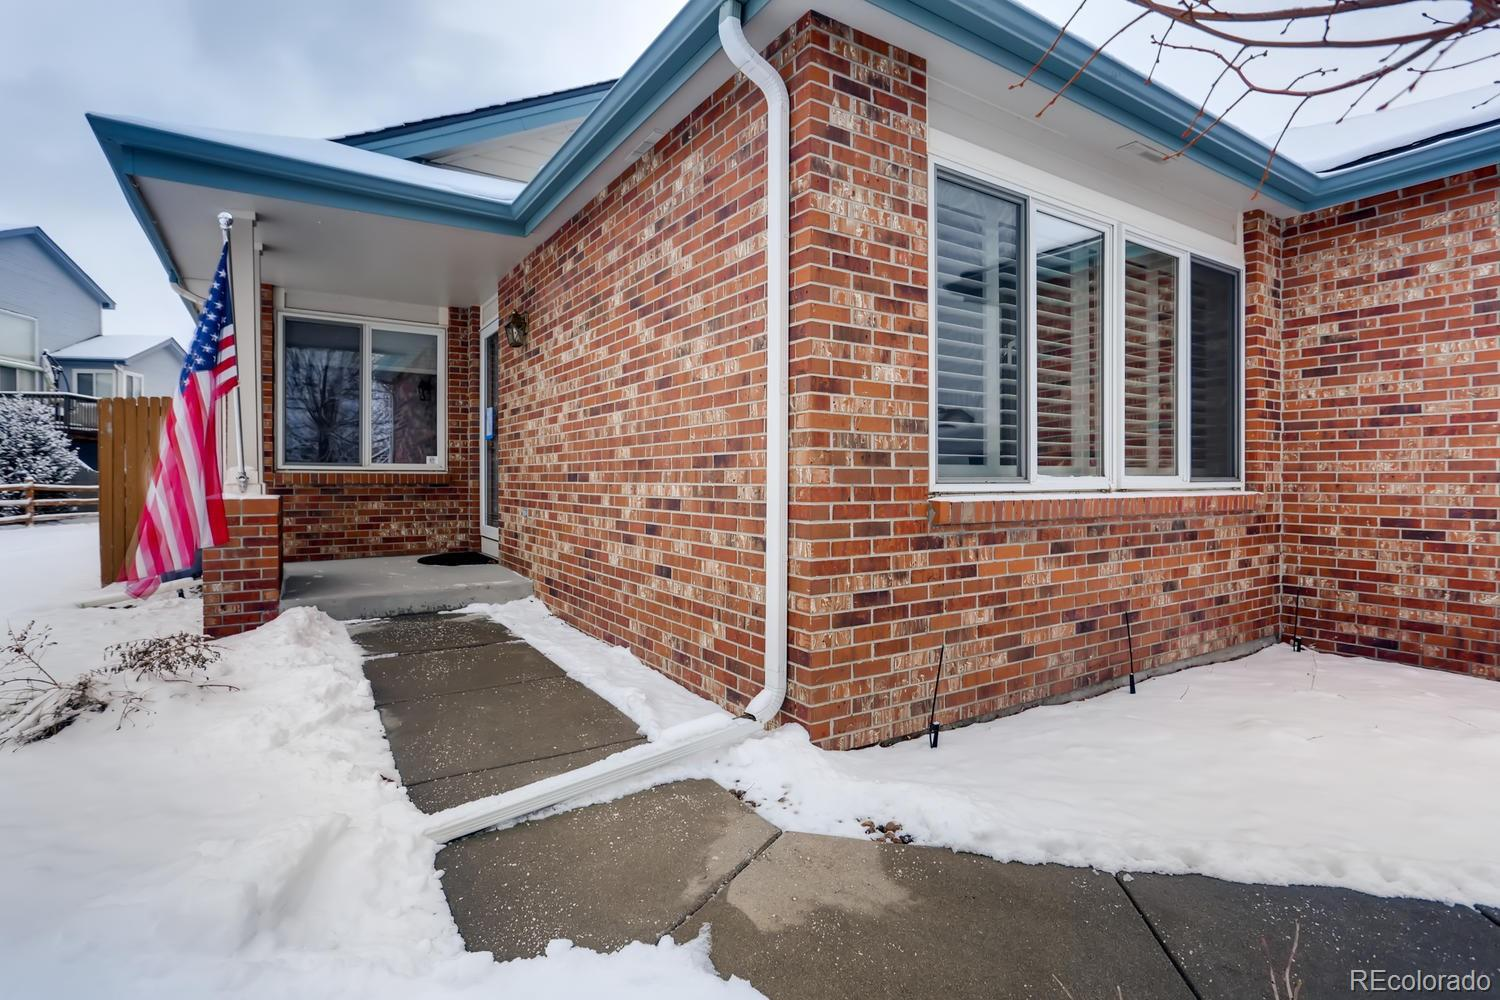 MLS# 3407296 - 4 - 4106 S Granby Circle, Aurora, CO 80014